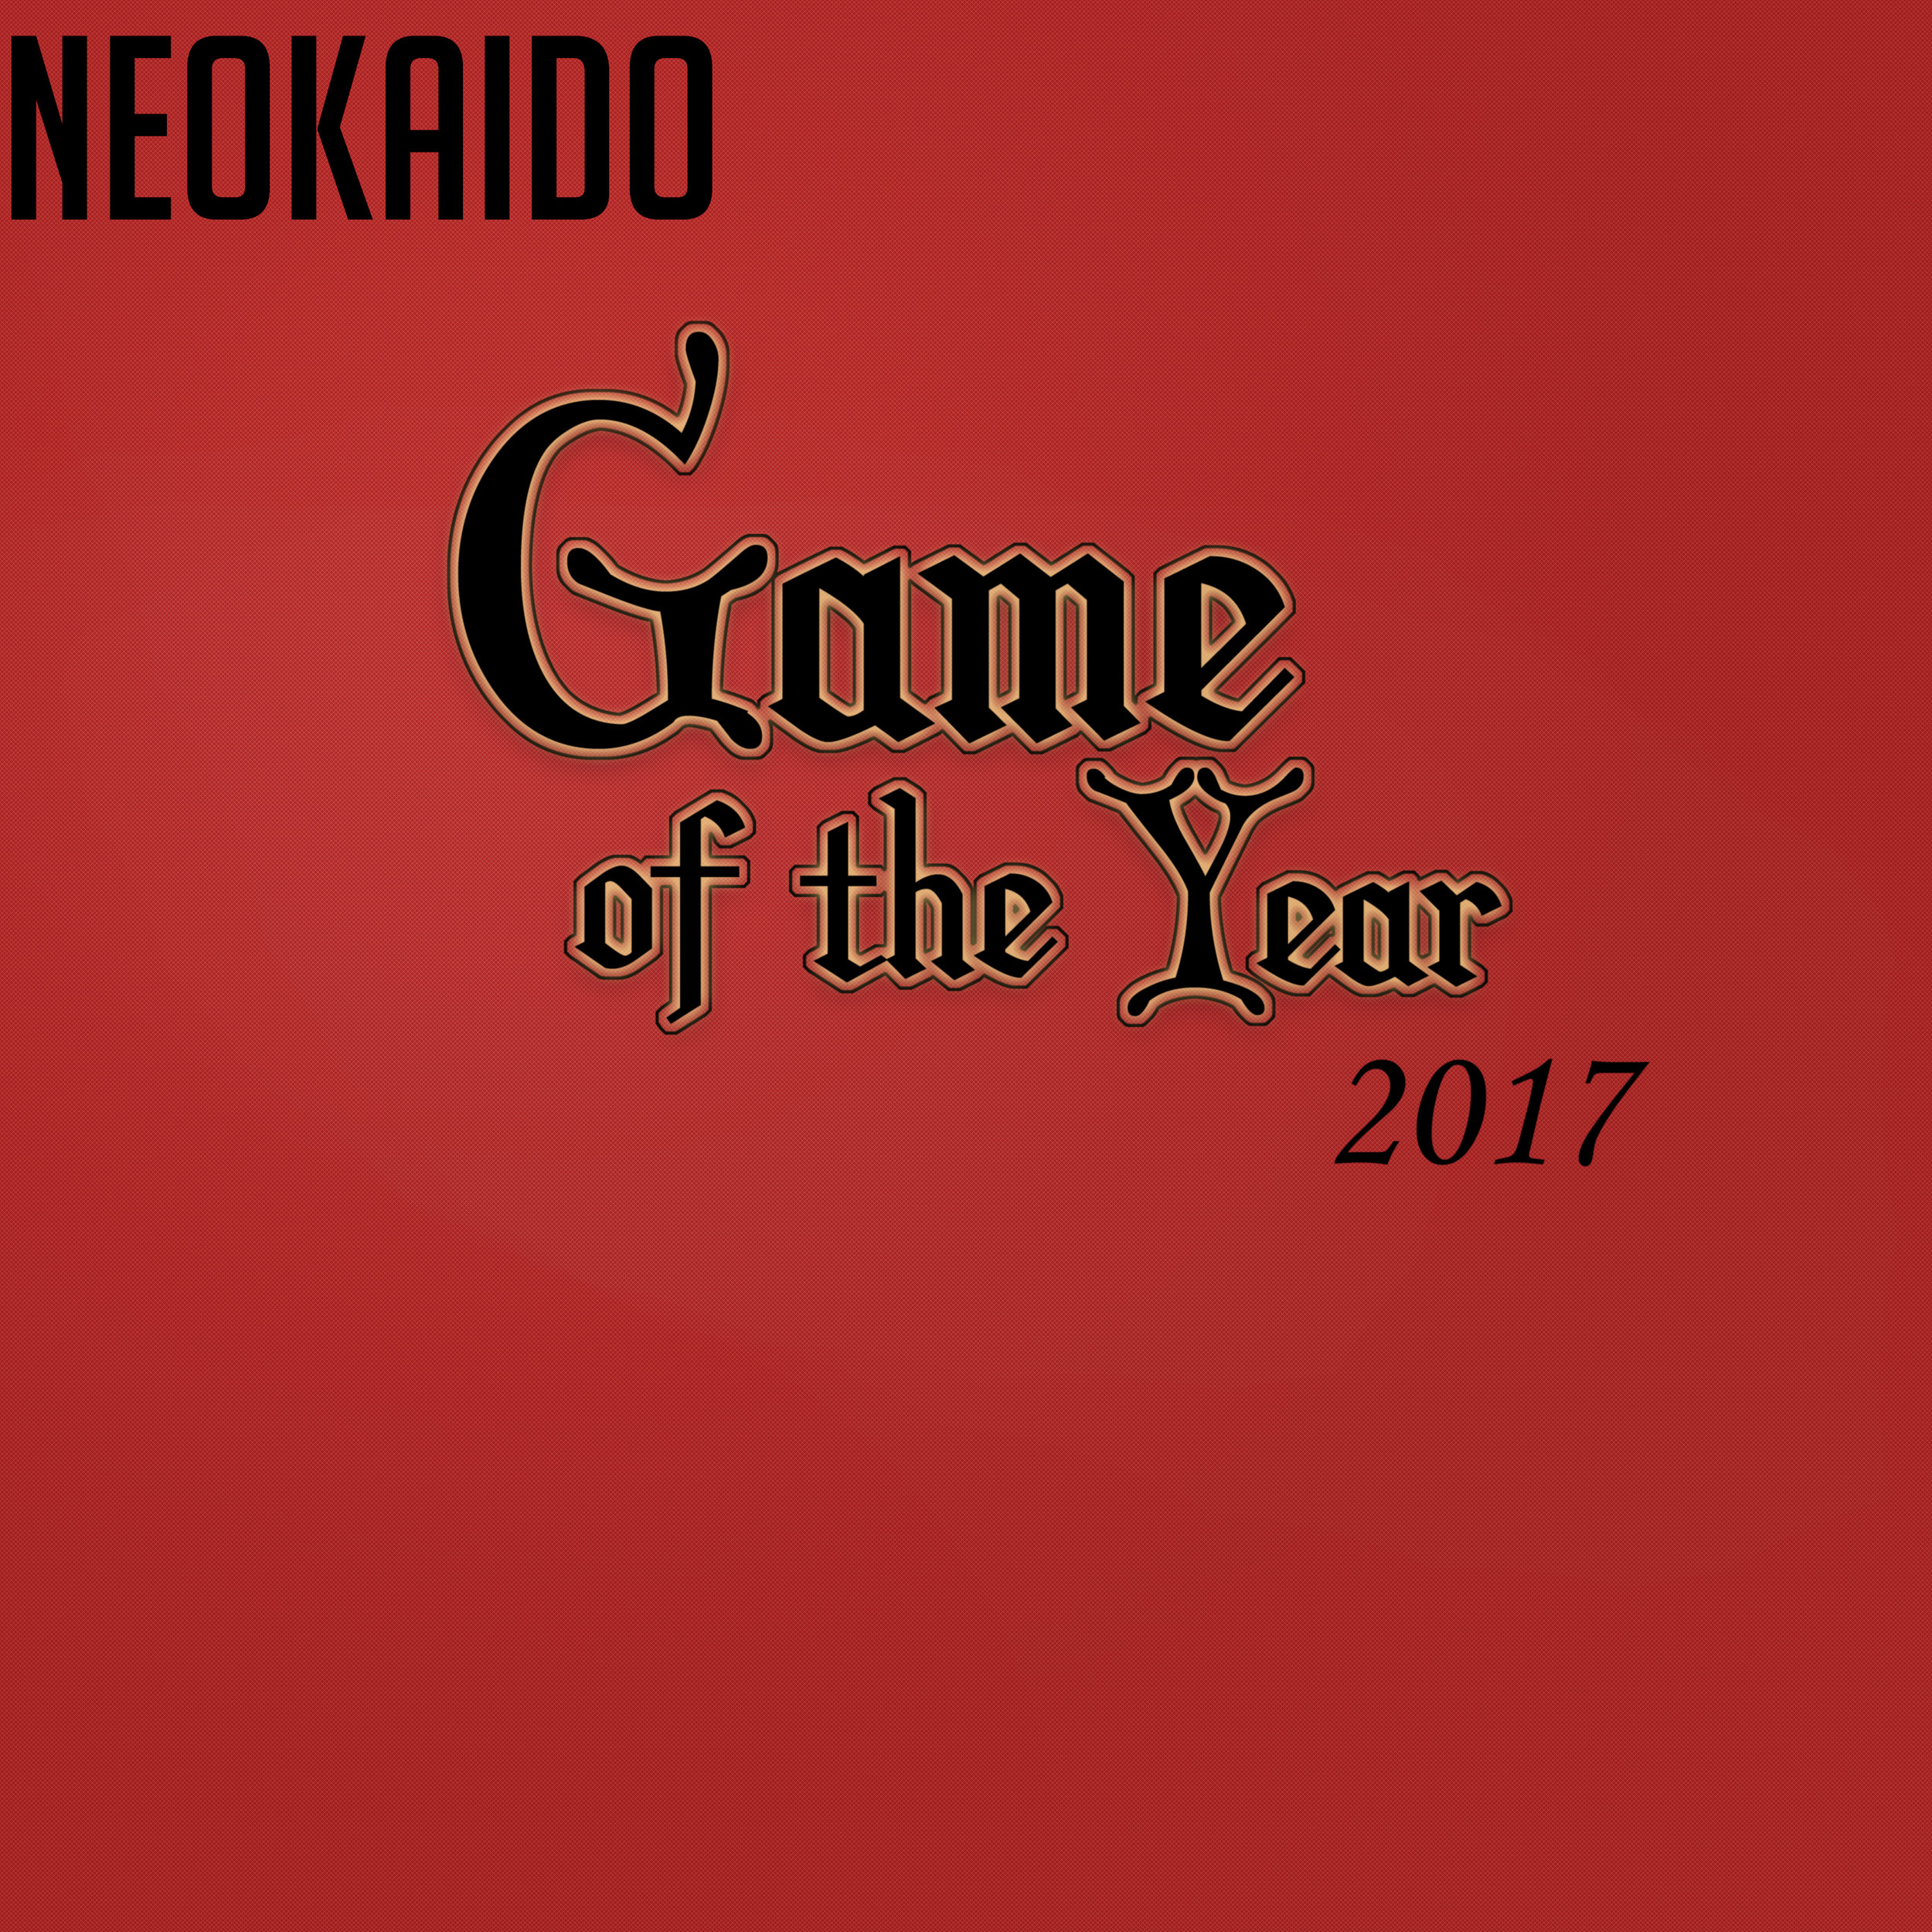 Neokaido Game of the Year 2017 (Part 4) - The final discussion of 2017 houses our pick for Best Game. All of it has come to this; listen at your own risk.